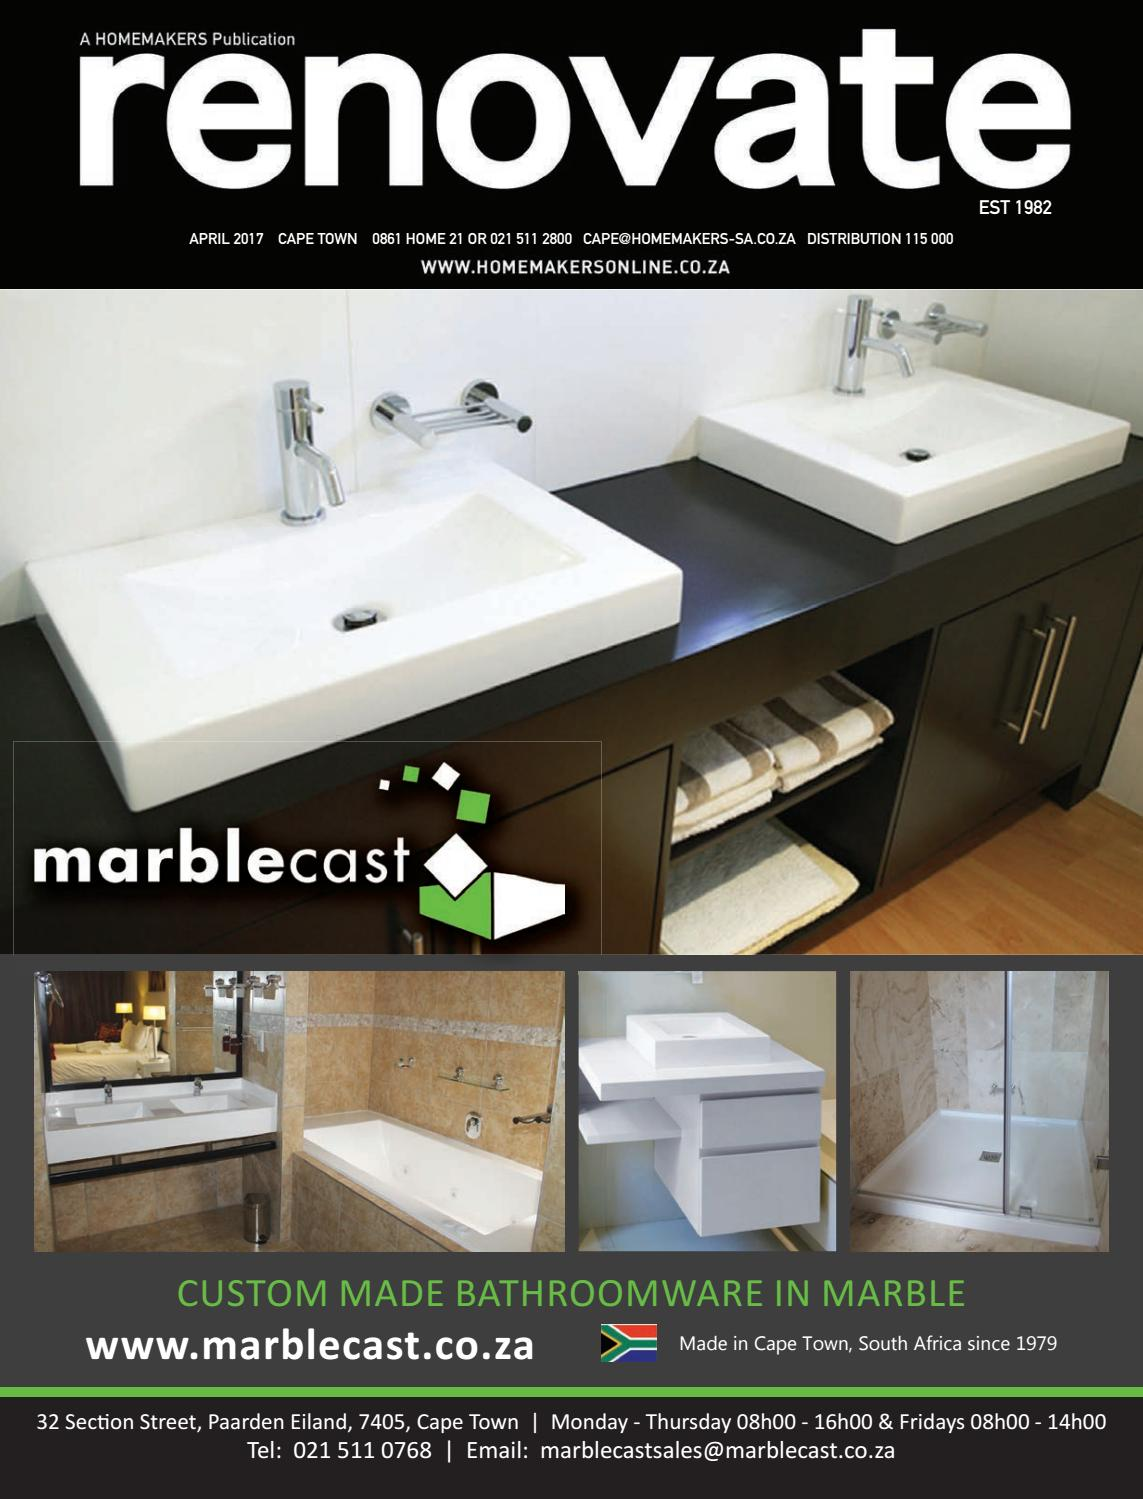 Bathroom Renovations Durbanville renovate, cape town april 2017homemakers - issuu